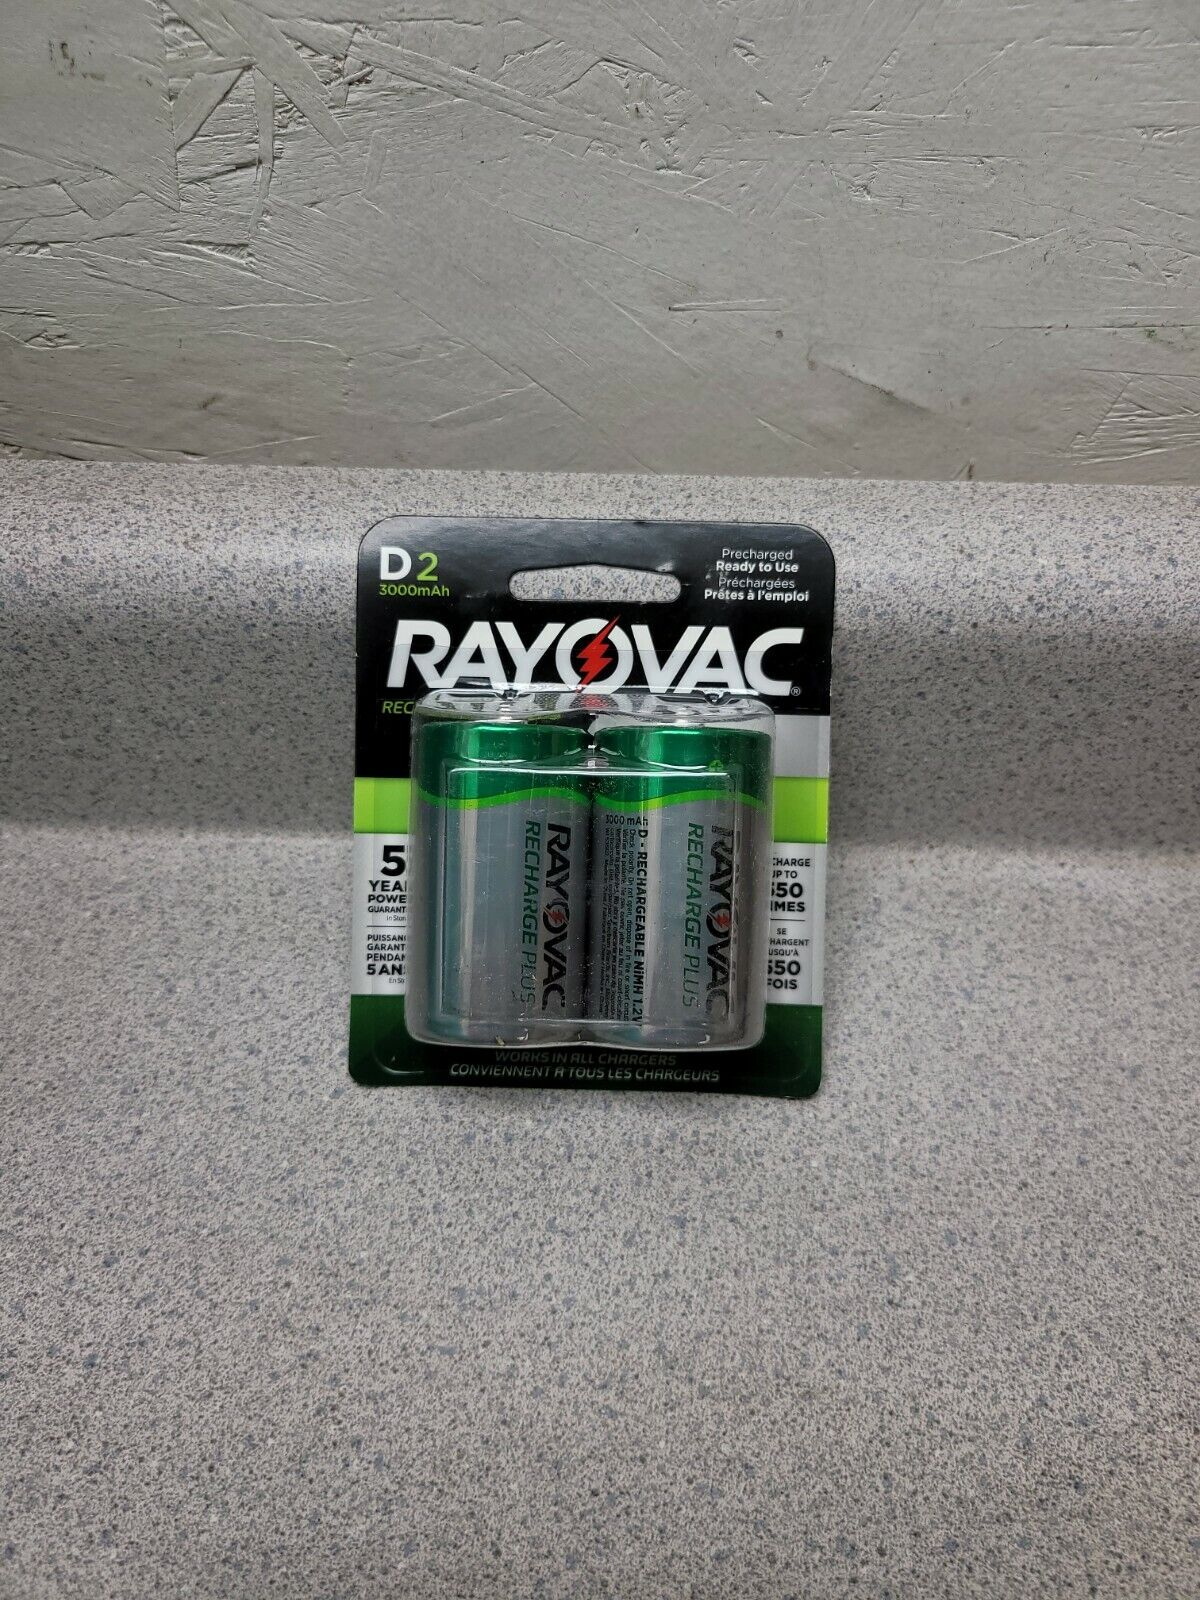 (2-Pack) RAYOVAC Platinum Rechargeable D Battery NEW Batteries 3000MAH 1.2V